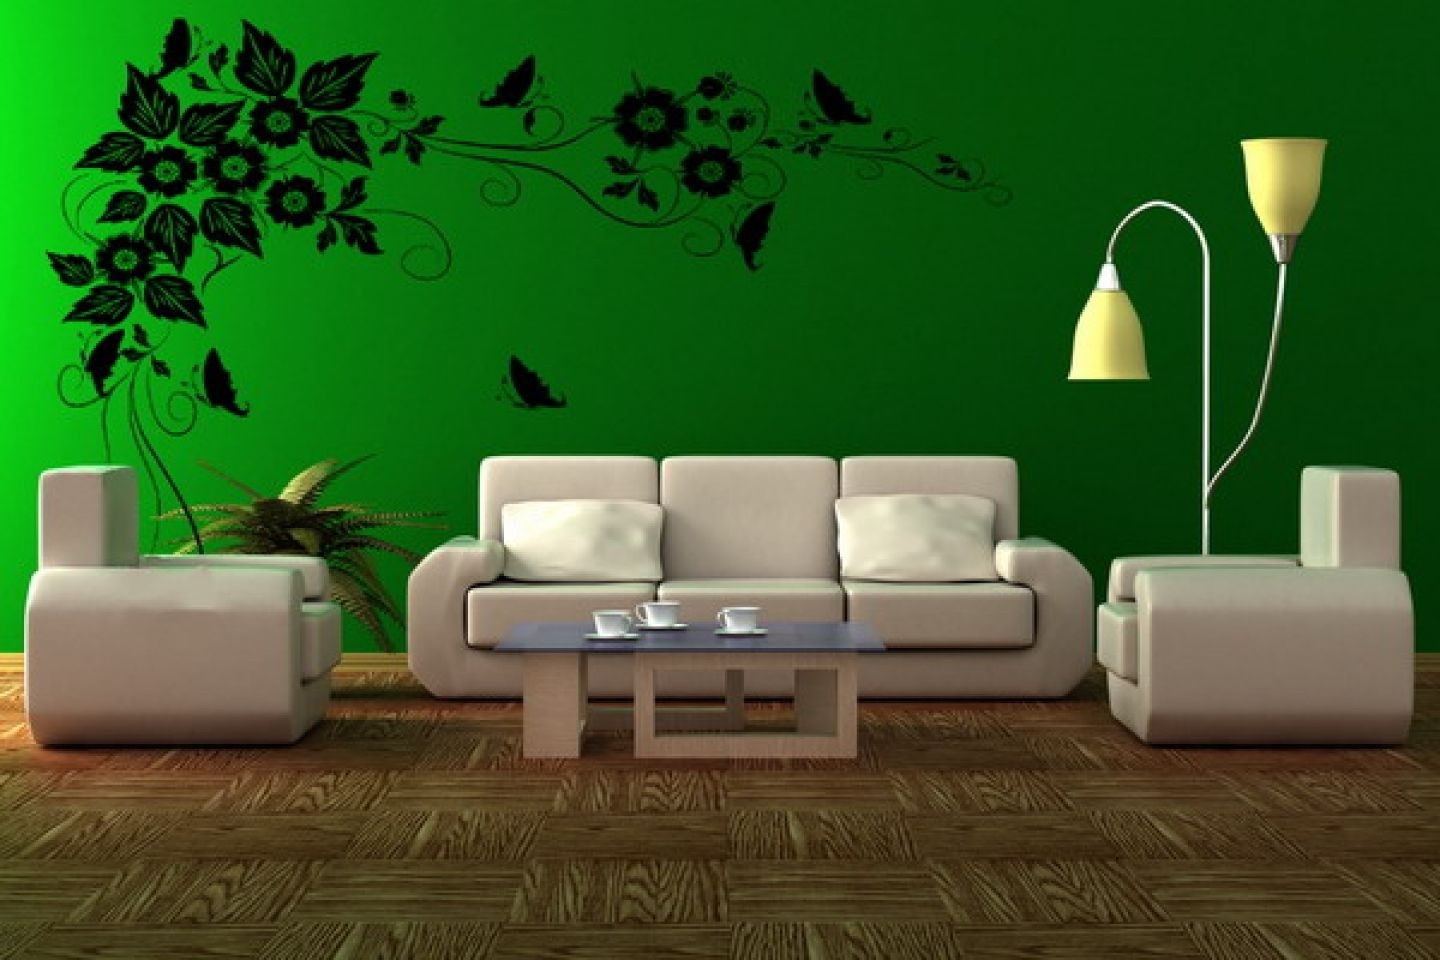 living room design ideas - Green House Decoration